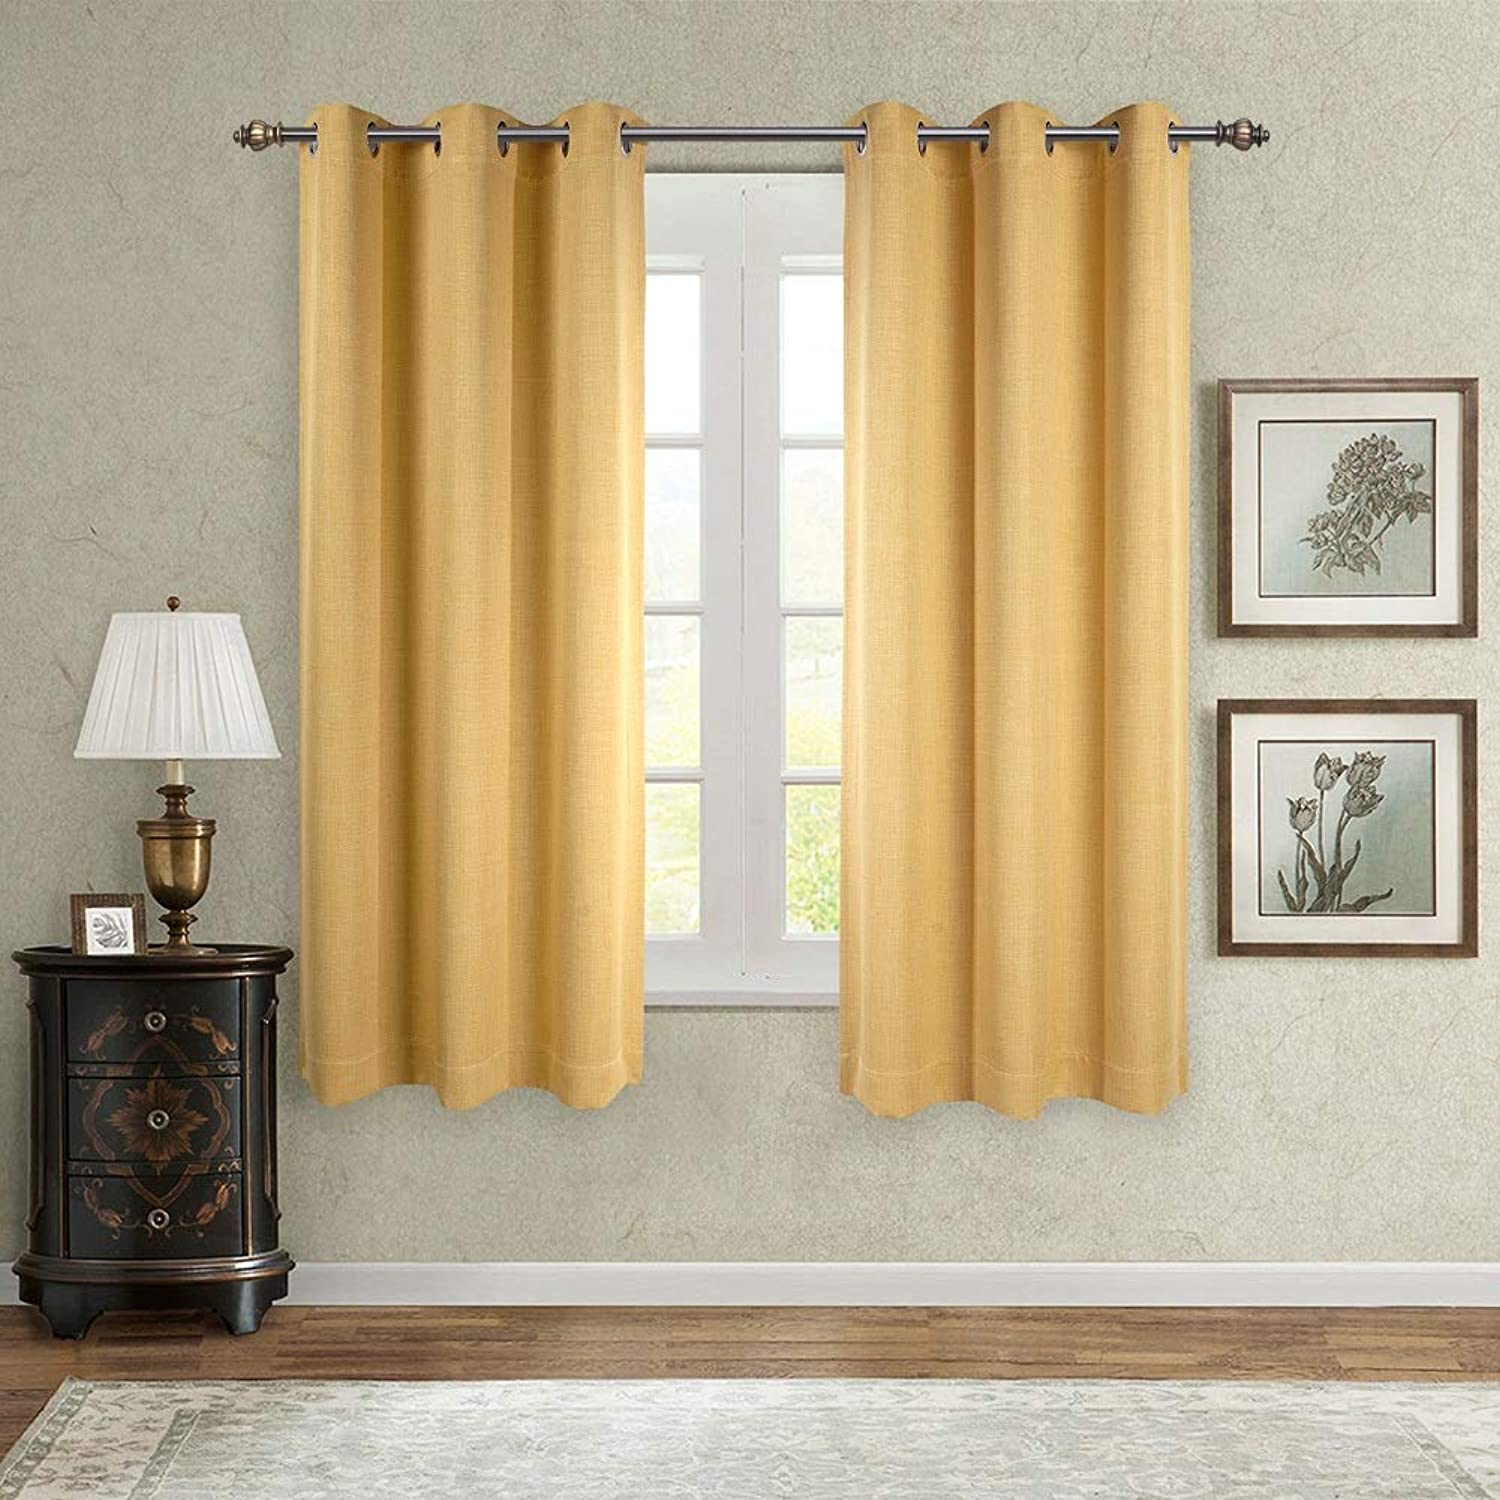 SINGINGLORY Blackout Curtains 2 Panels Set, Linen Textured Thermal Insulated Grommet Window Curtains for Bedroom, Living Room and Kitchen (42x63 Inch, Yellow)